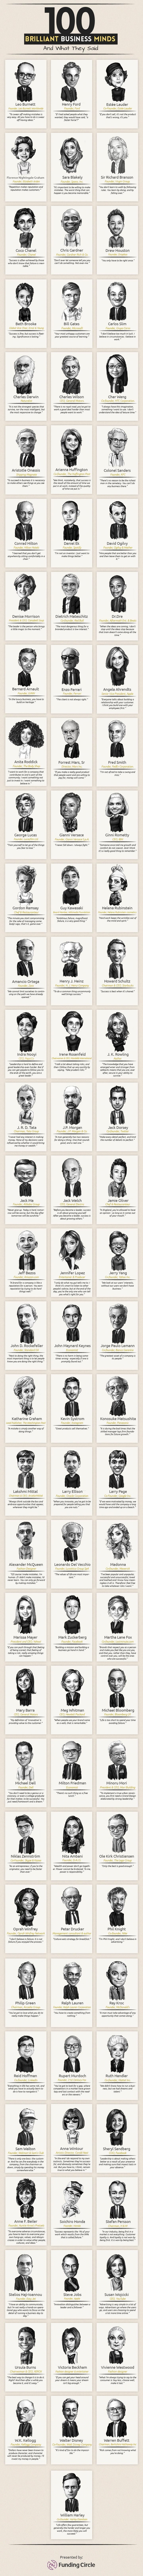 100 Brilliant Business Minds and What They Said #Infographic #Entrepreneur #SuccessStories